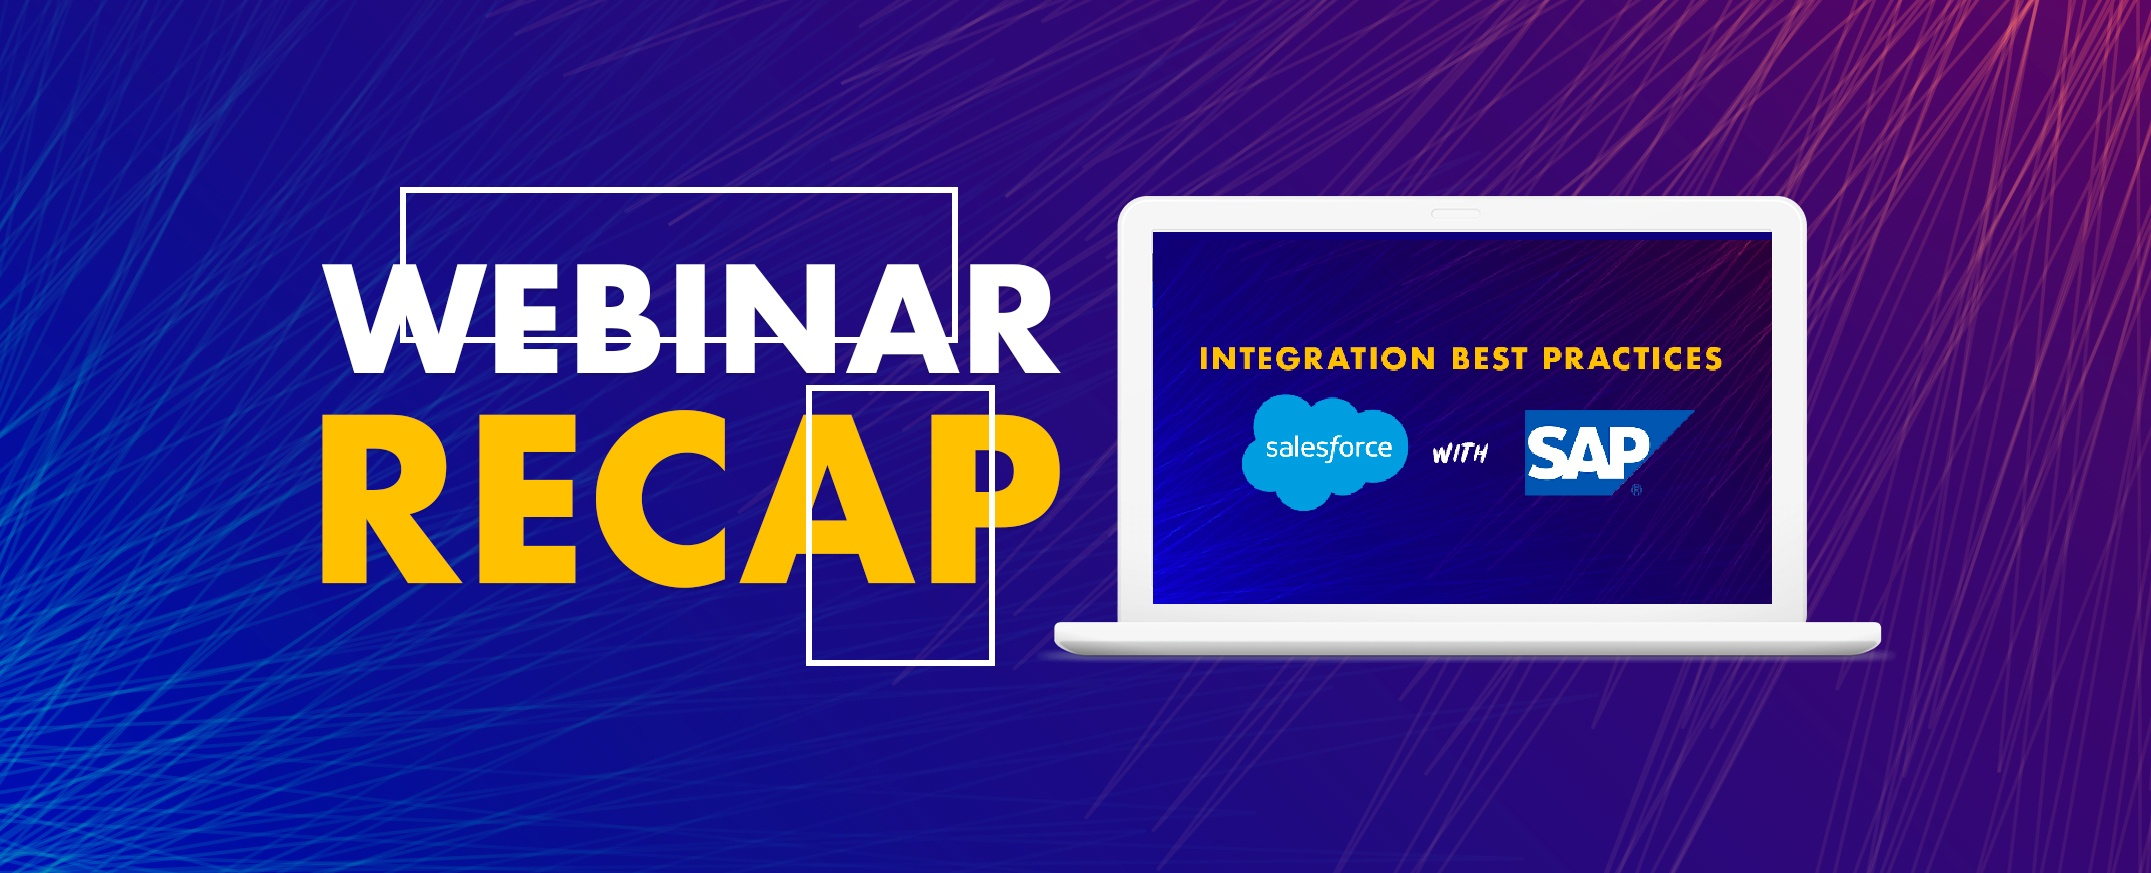 Webinar-Best-practices-while-integrating-SAP-with-Salesforce